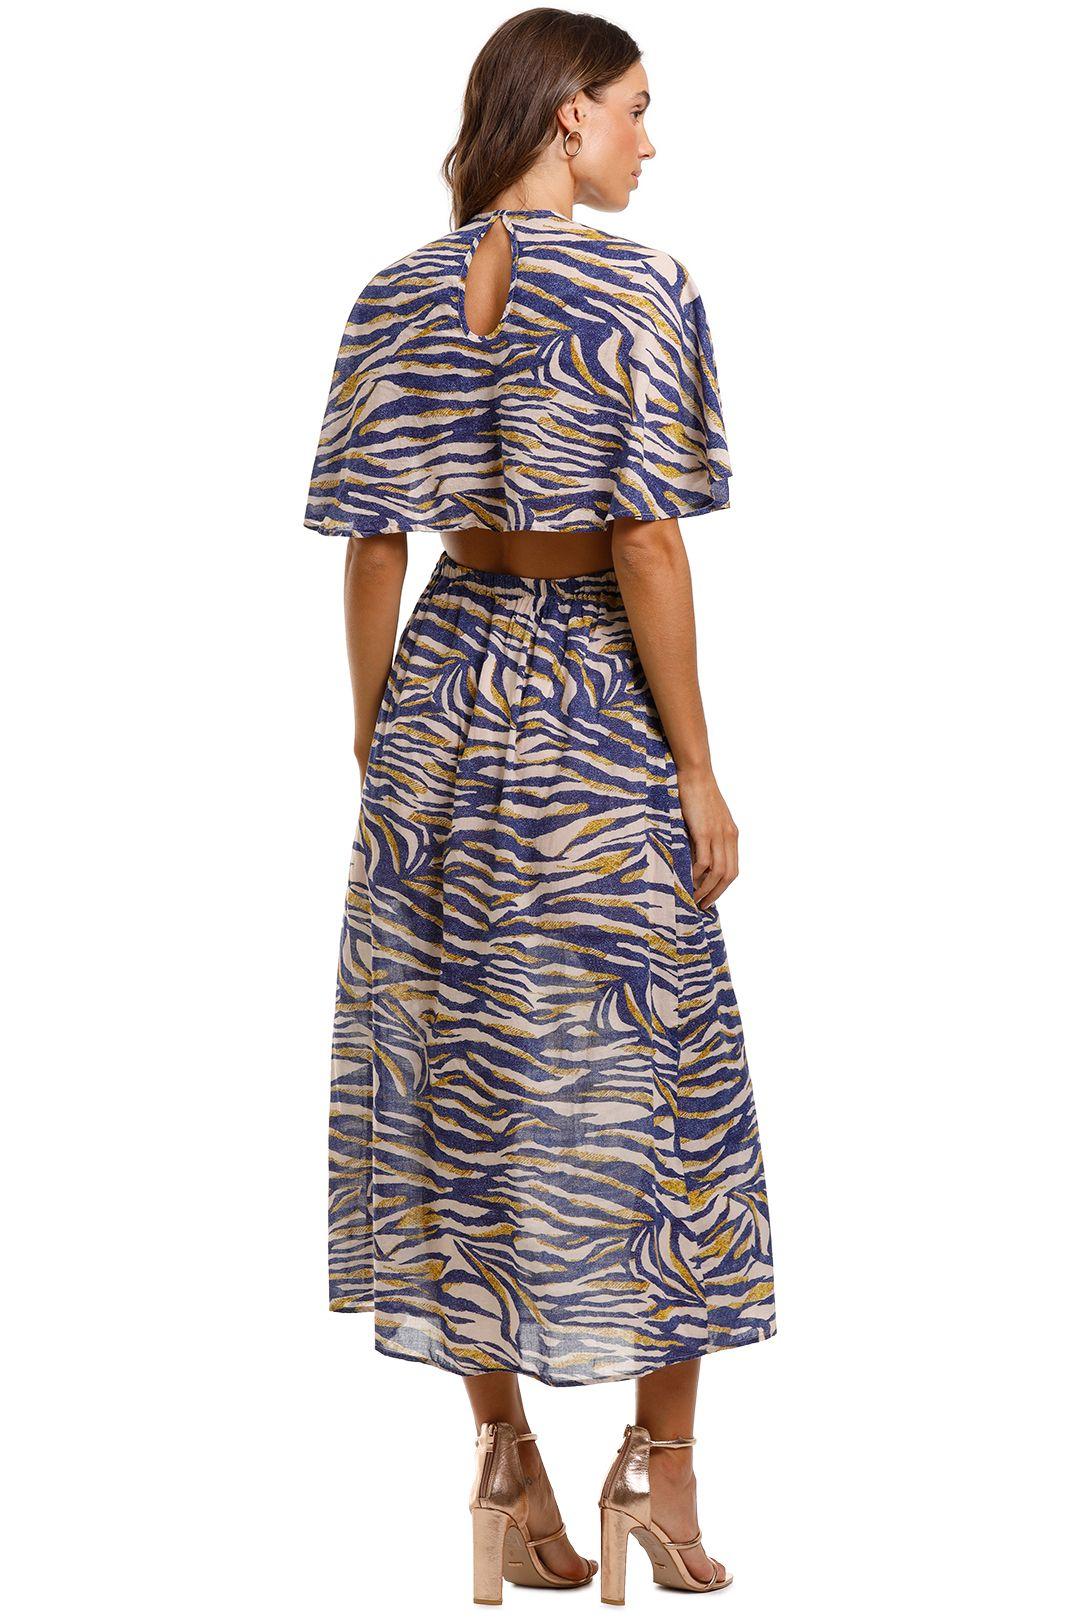 Suboo Into The Wilds Cape Dress Animal Print Open Back